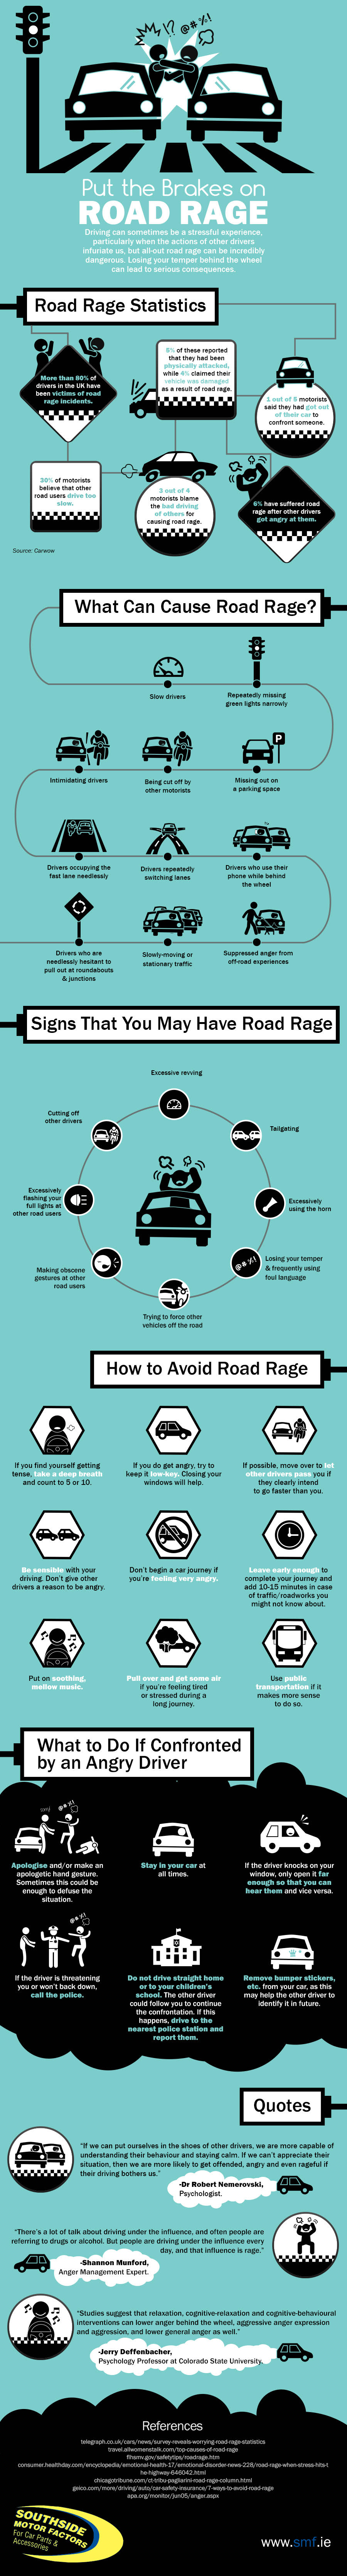 road-rage-infographic